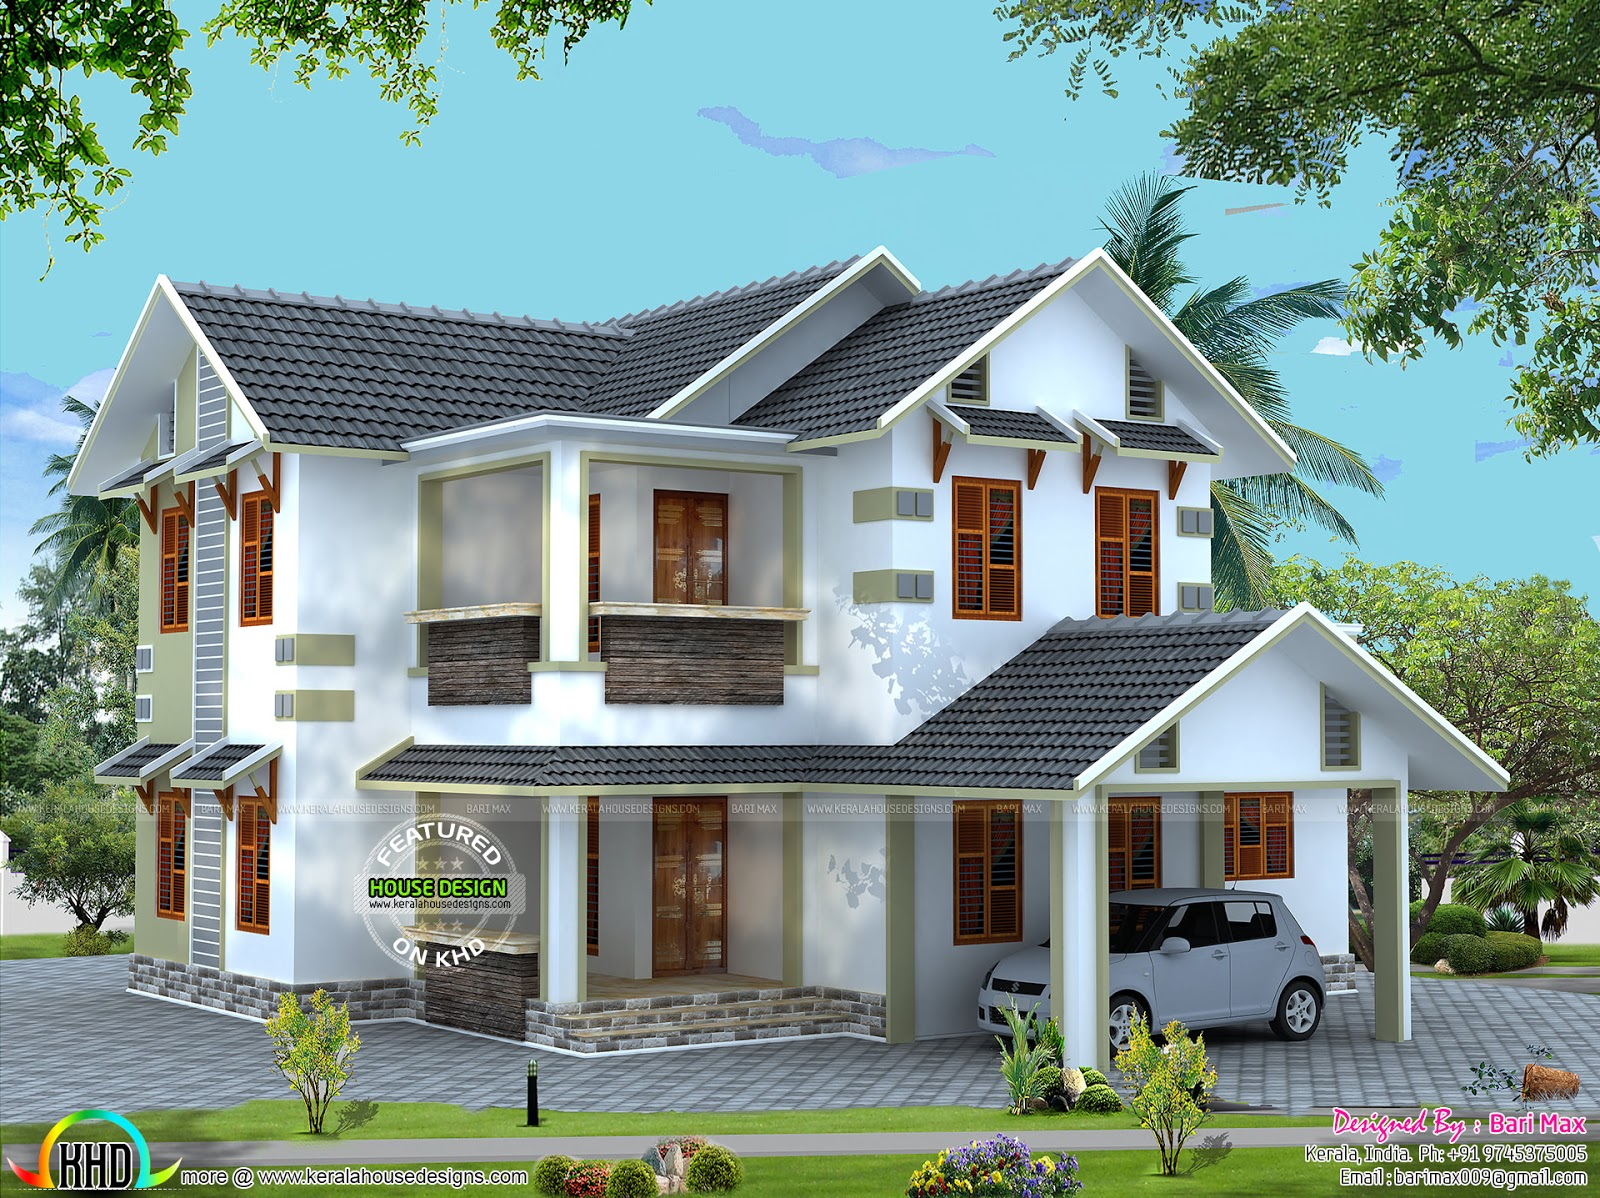 Vastu compliant sloping roof house kerala home design for Sloped roof house plans in india